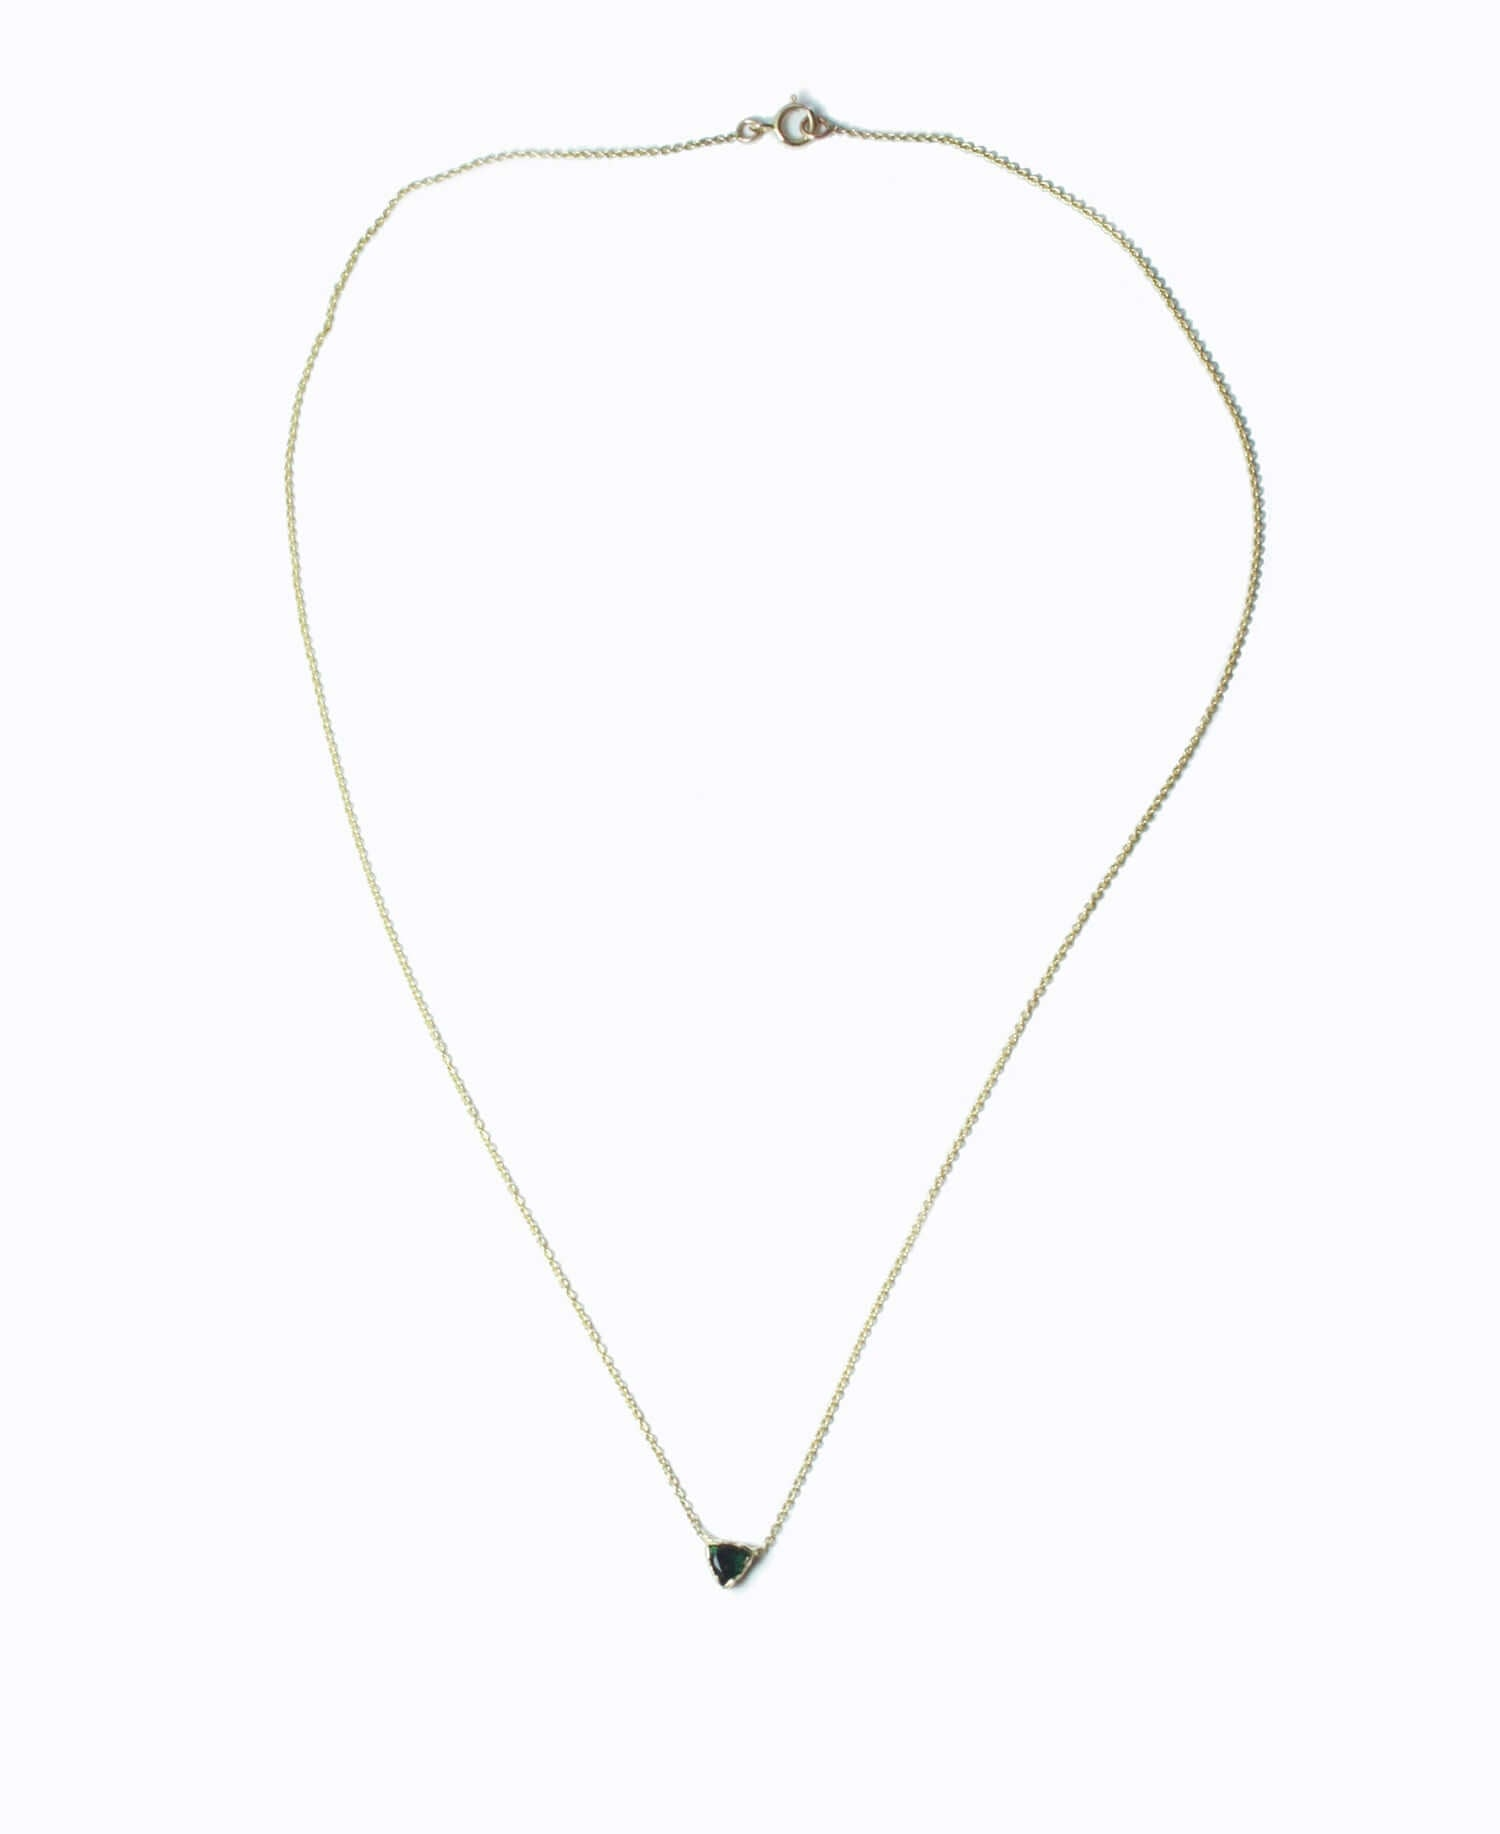 Emerald Trillion Necklace, Necklace, Macha Studio, Brooklyn NYC